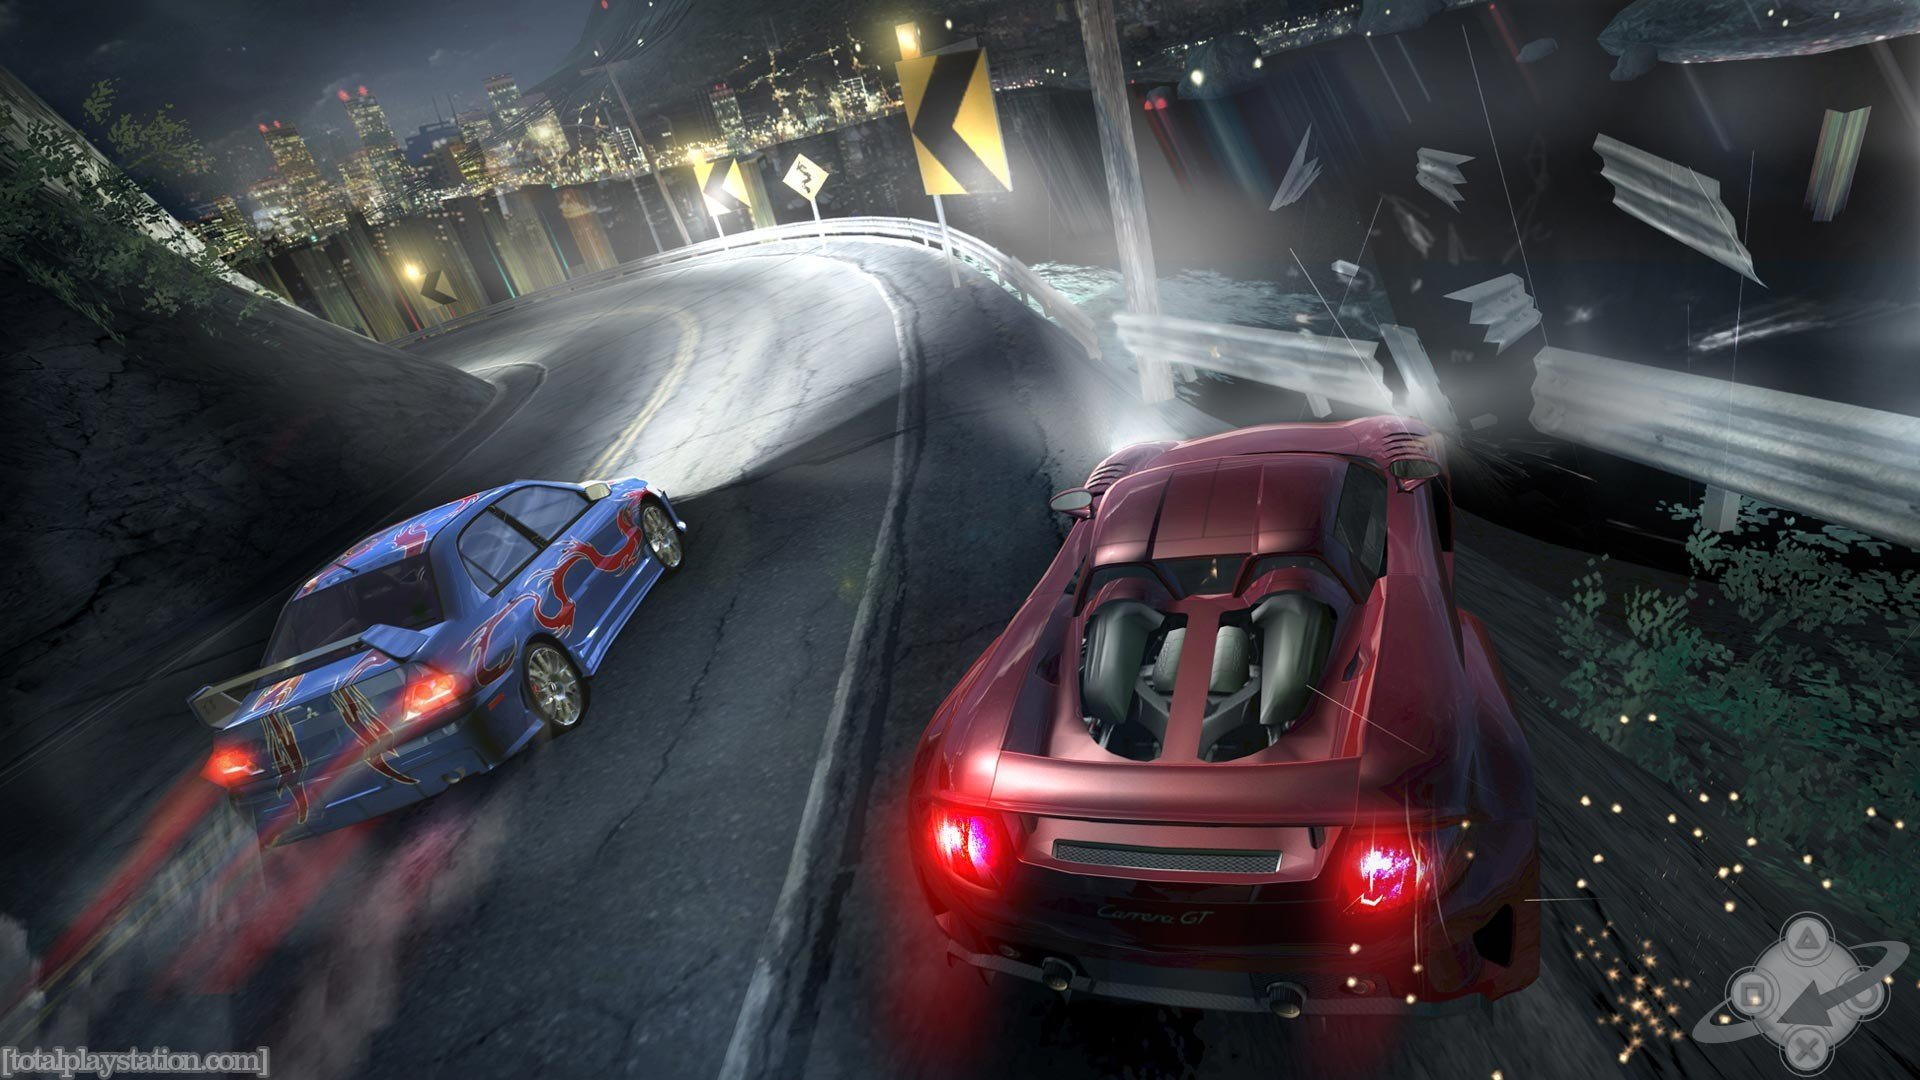 Need For Speed Carbon Wallpapers 1920x1080 Full Hd 1080p